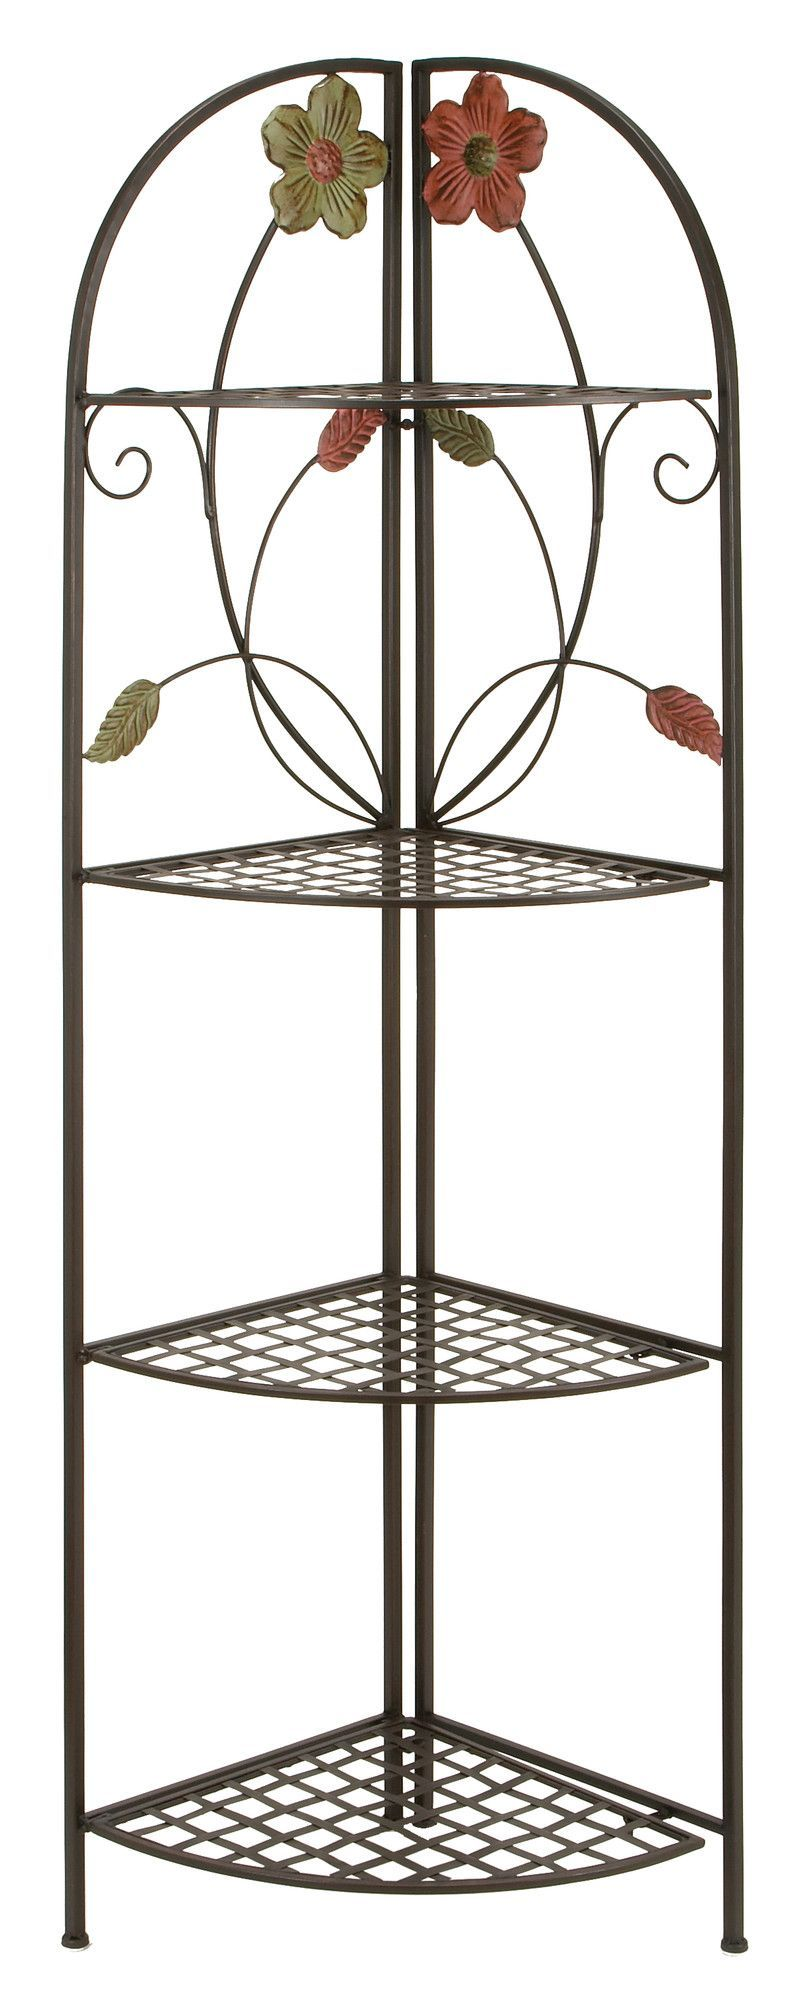 Whether You Load Up The Uma Enterprises 4 Shelf Corner Etagere  Floral  With Statues, Photos, Potted Plants, Or Nothing At All, It's The Perfect  Decorative